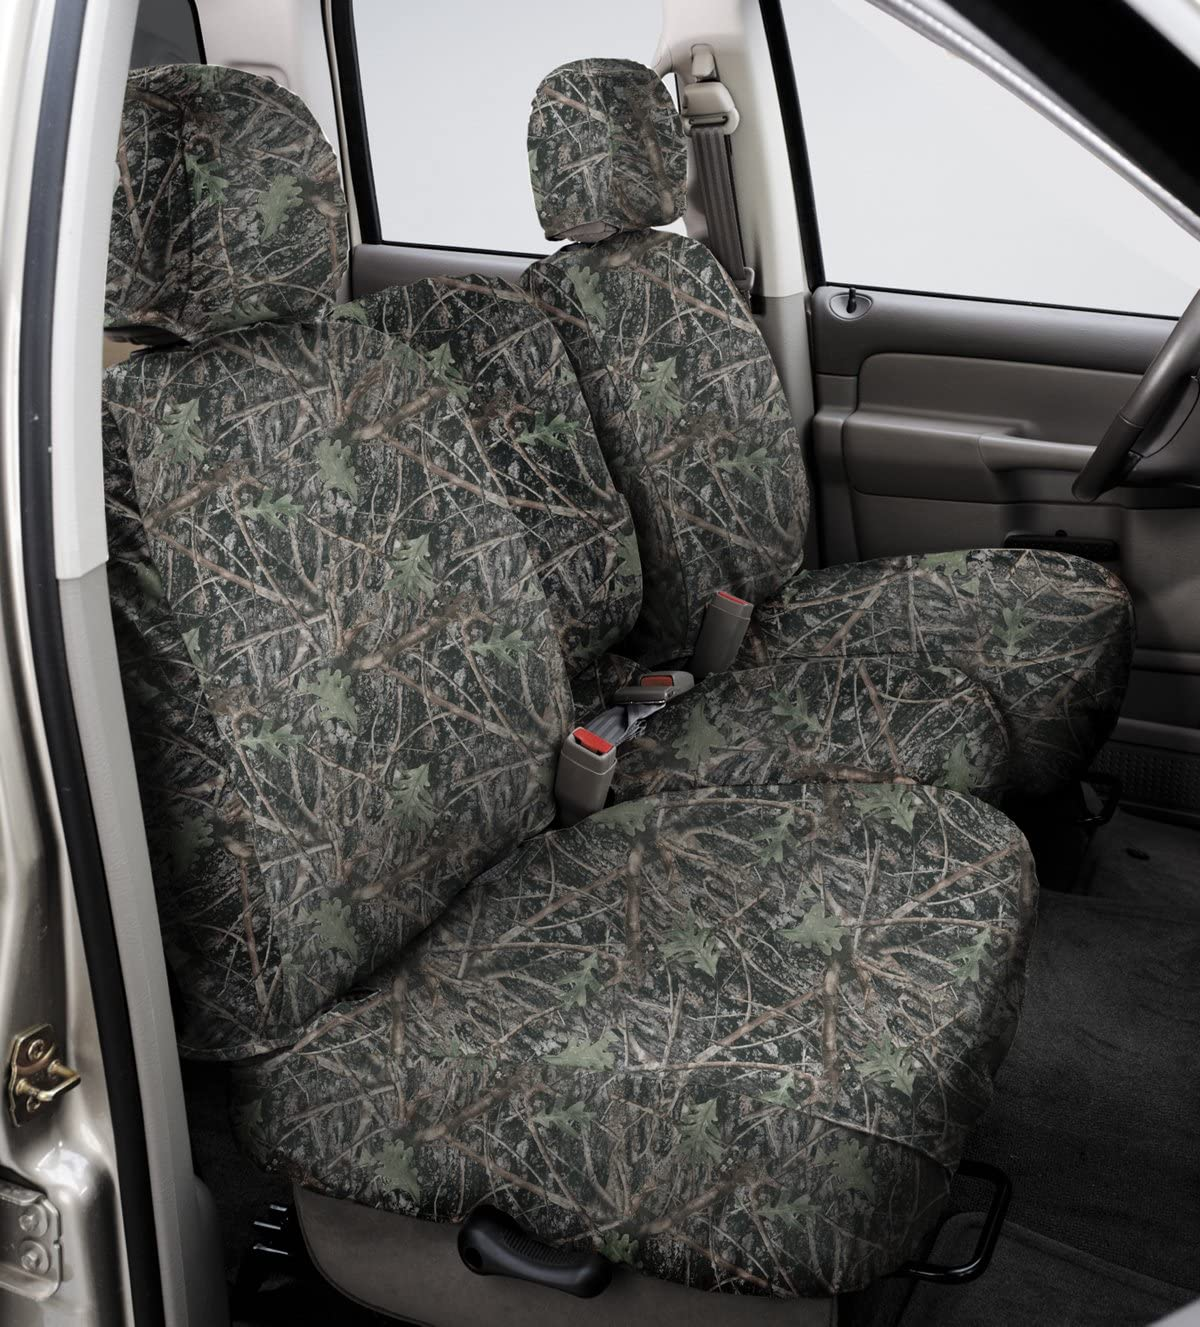 Covercraft SeatSaver Front Row Custom Fit Seat Cover for Select Chevrolet Silverado 1500/GMC Sierra 1500 Models - True Timber Polyester (Conceal Green)